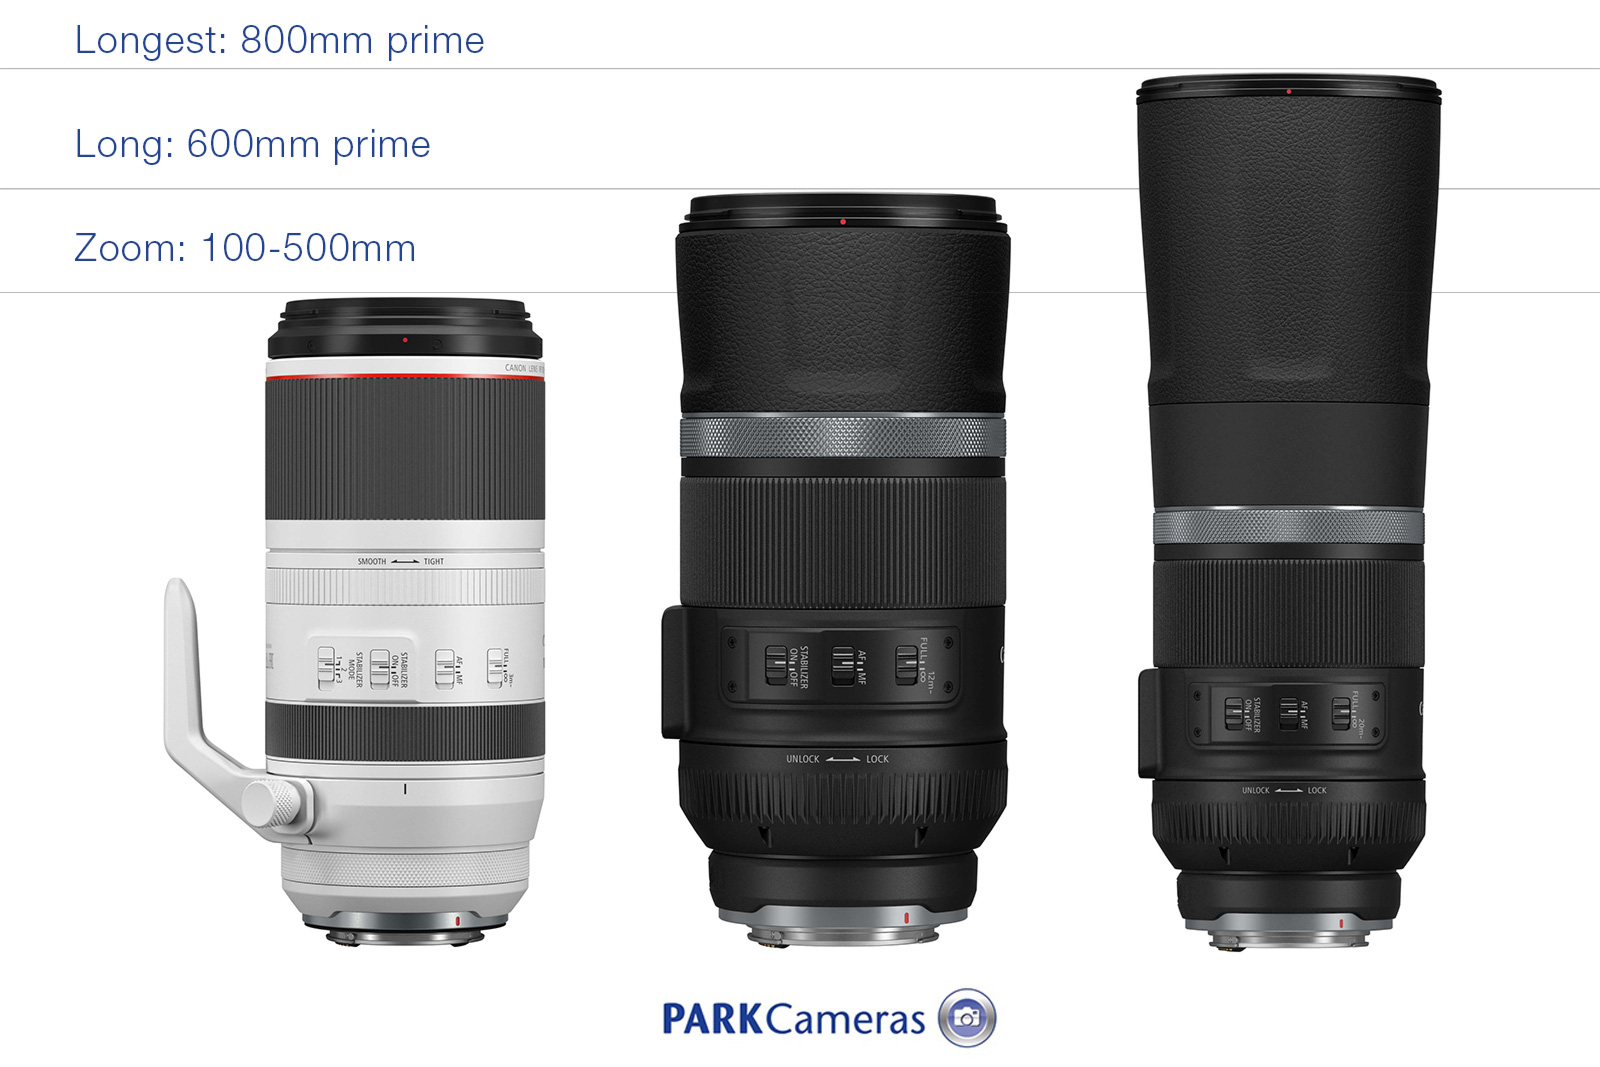 Go Long with new Canon RF super telephoto lenses